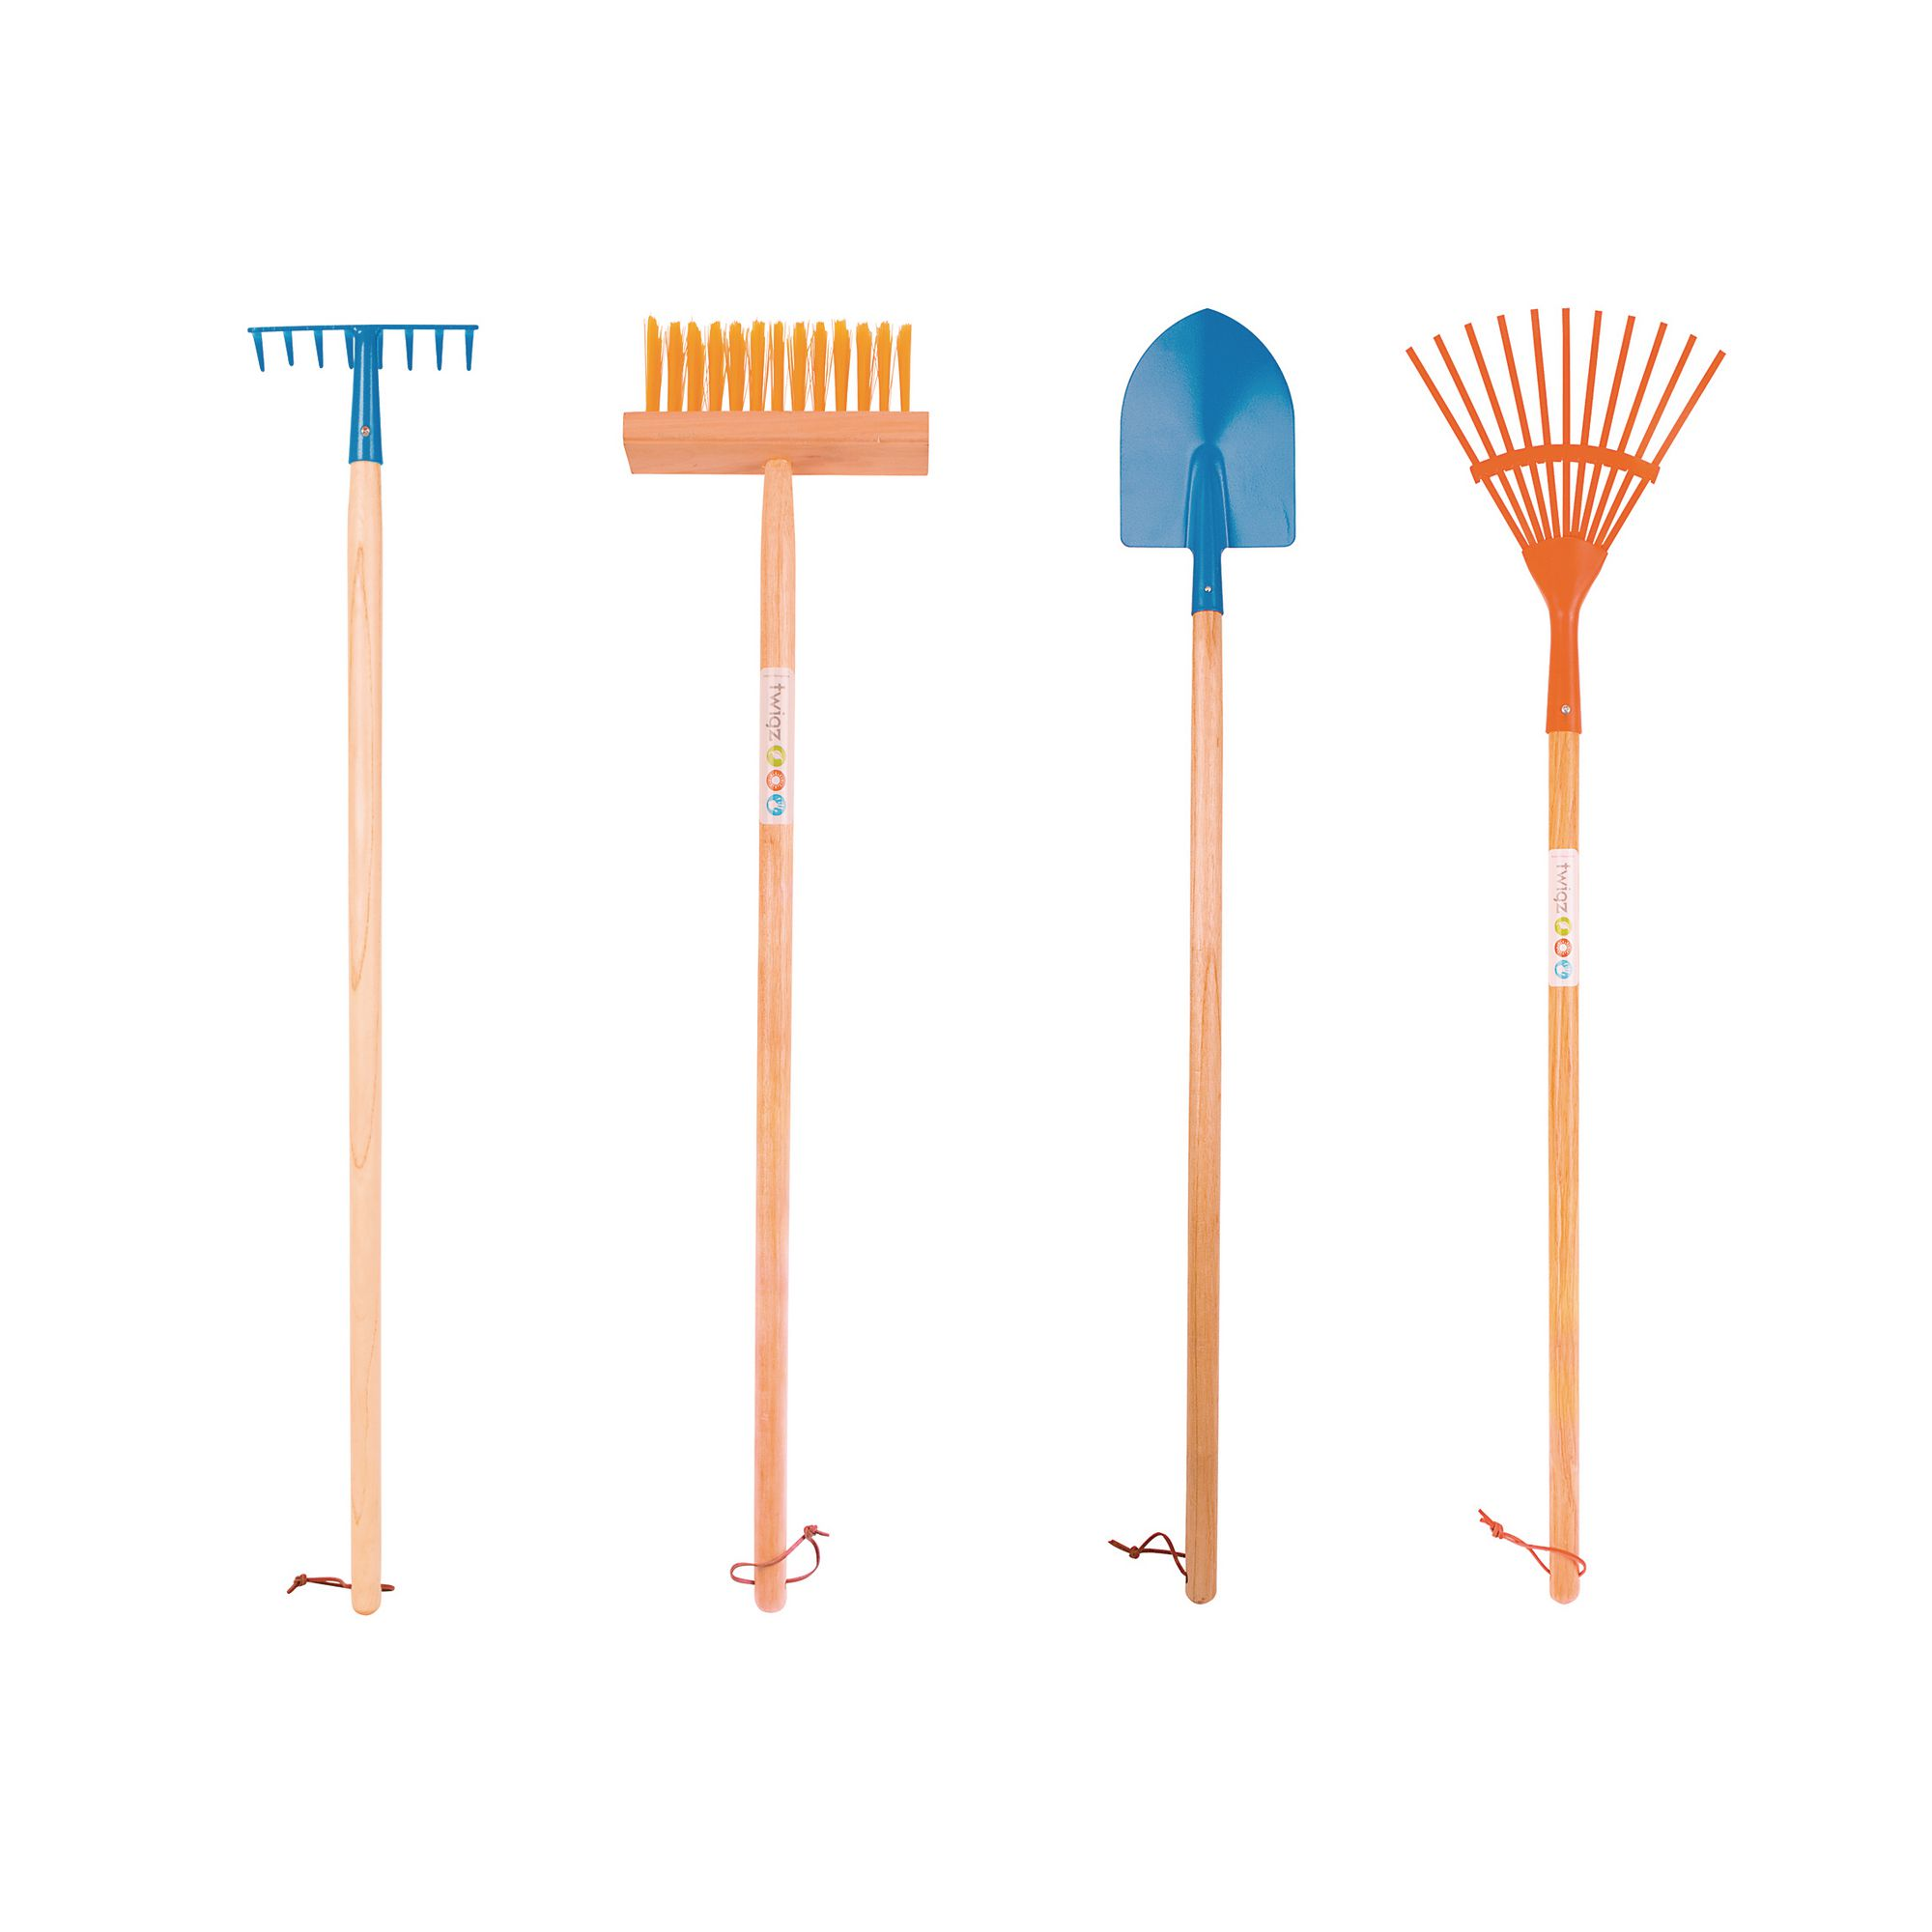 Long Handled Gardening Tools Set